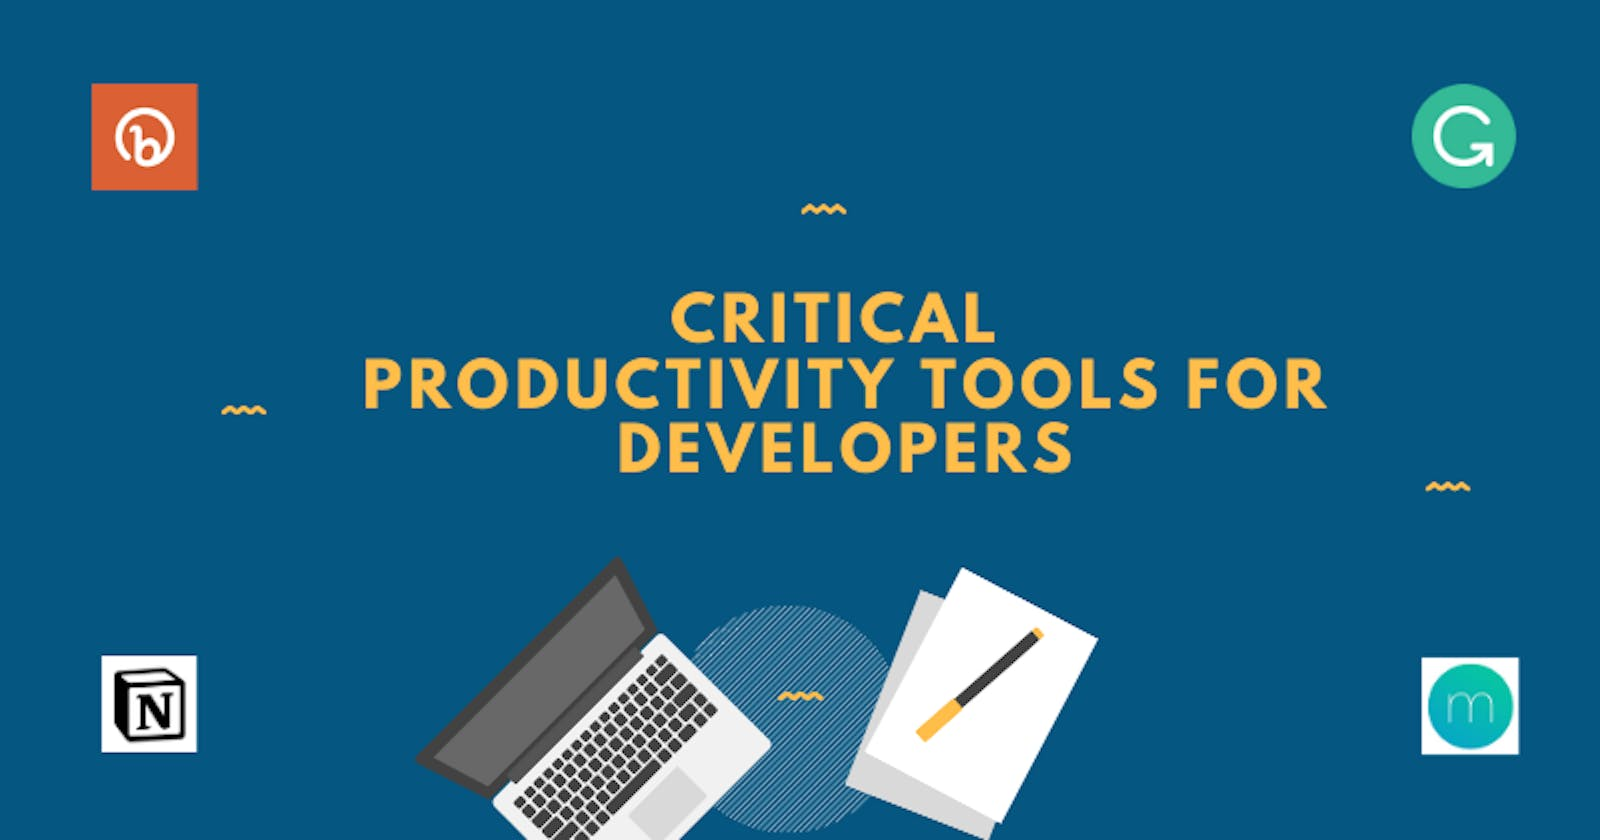 Critical productivity tools for developers